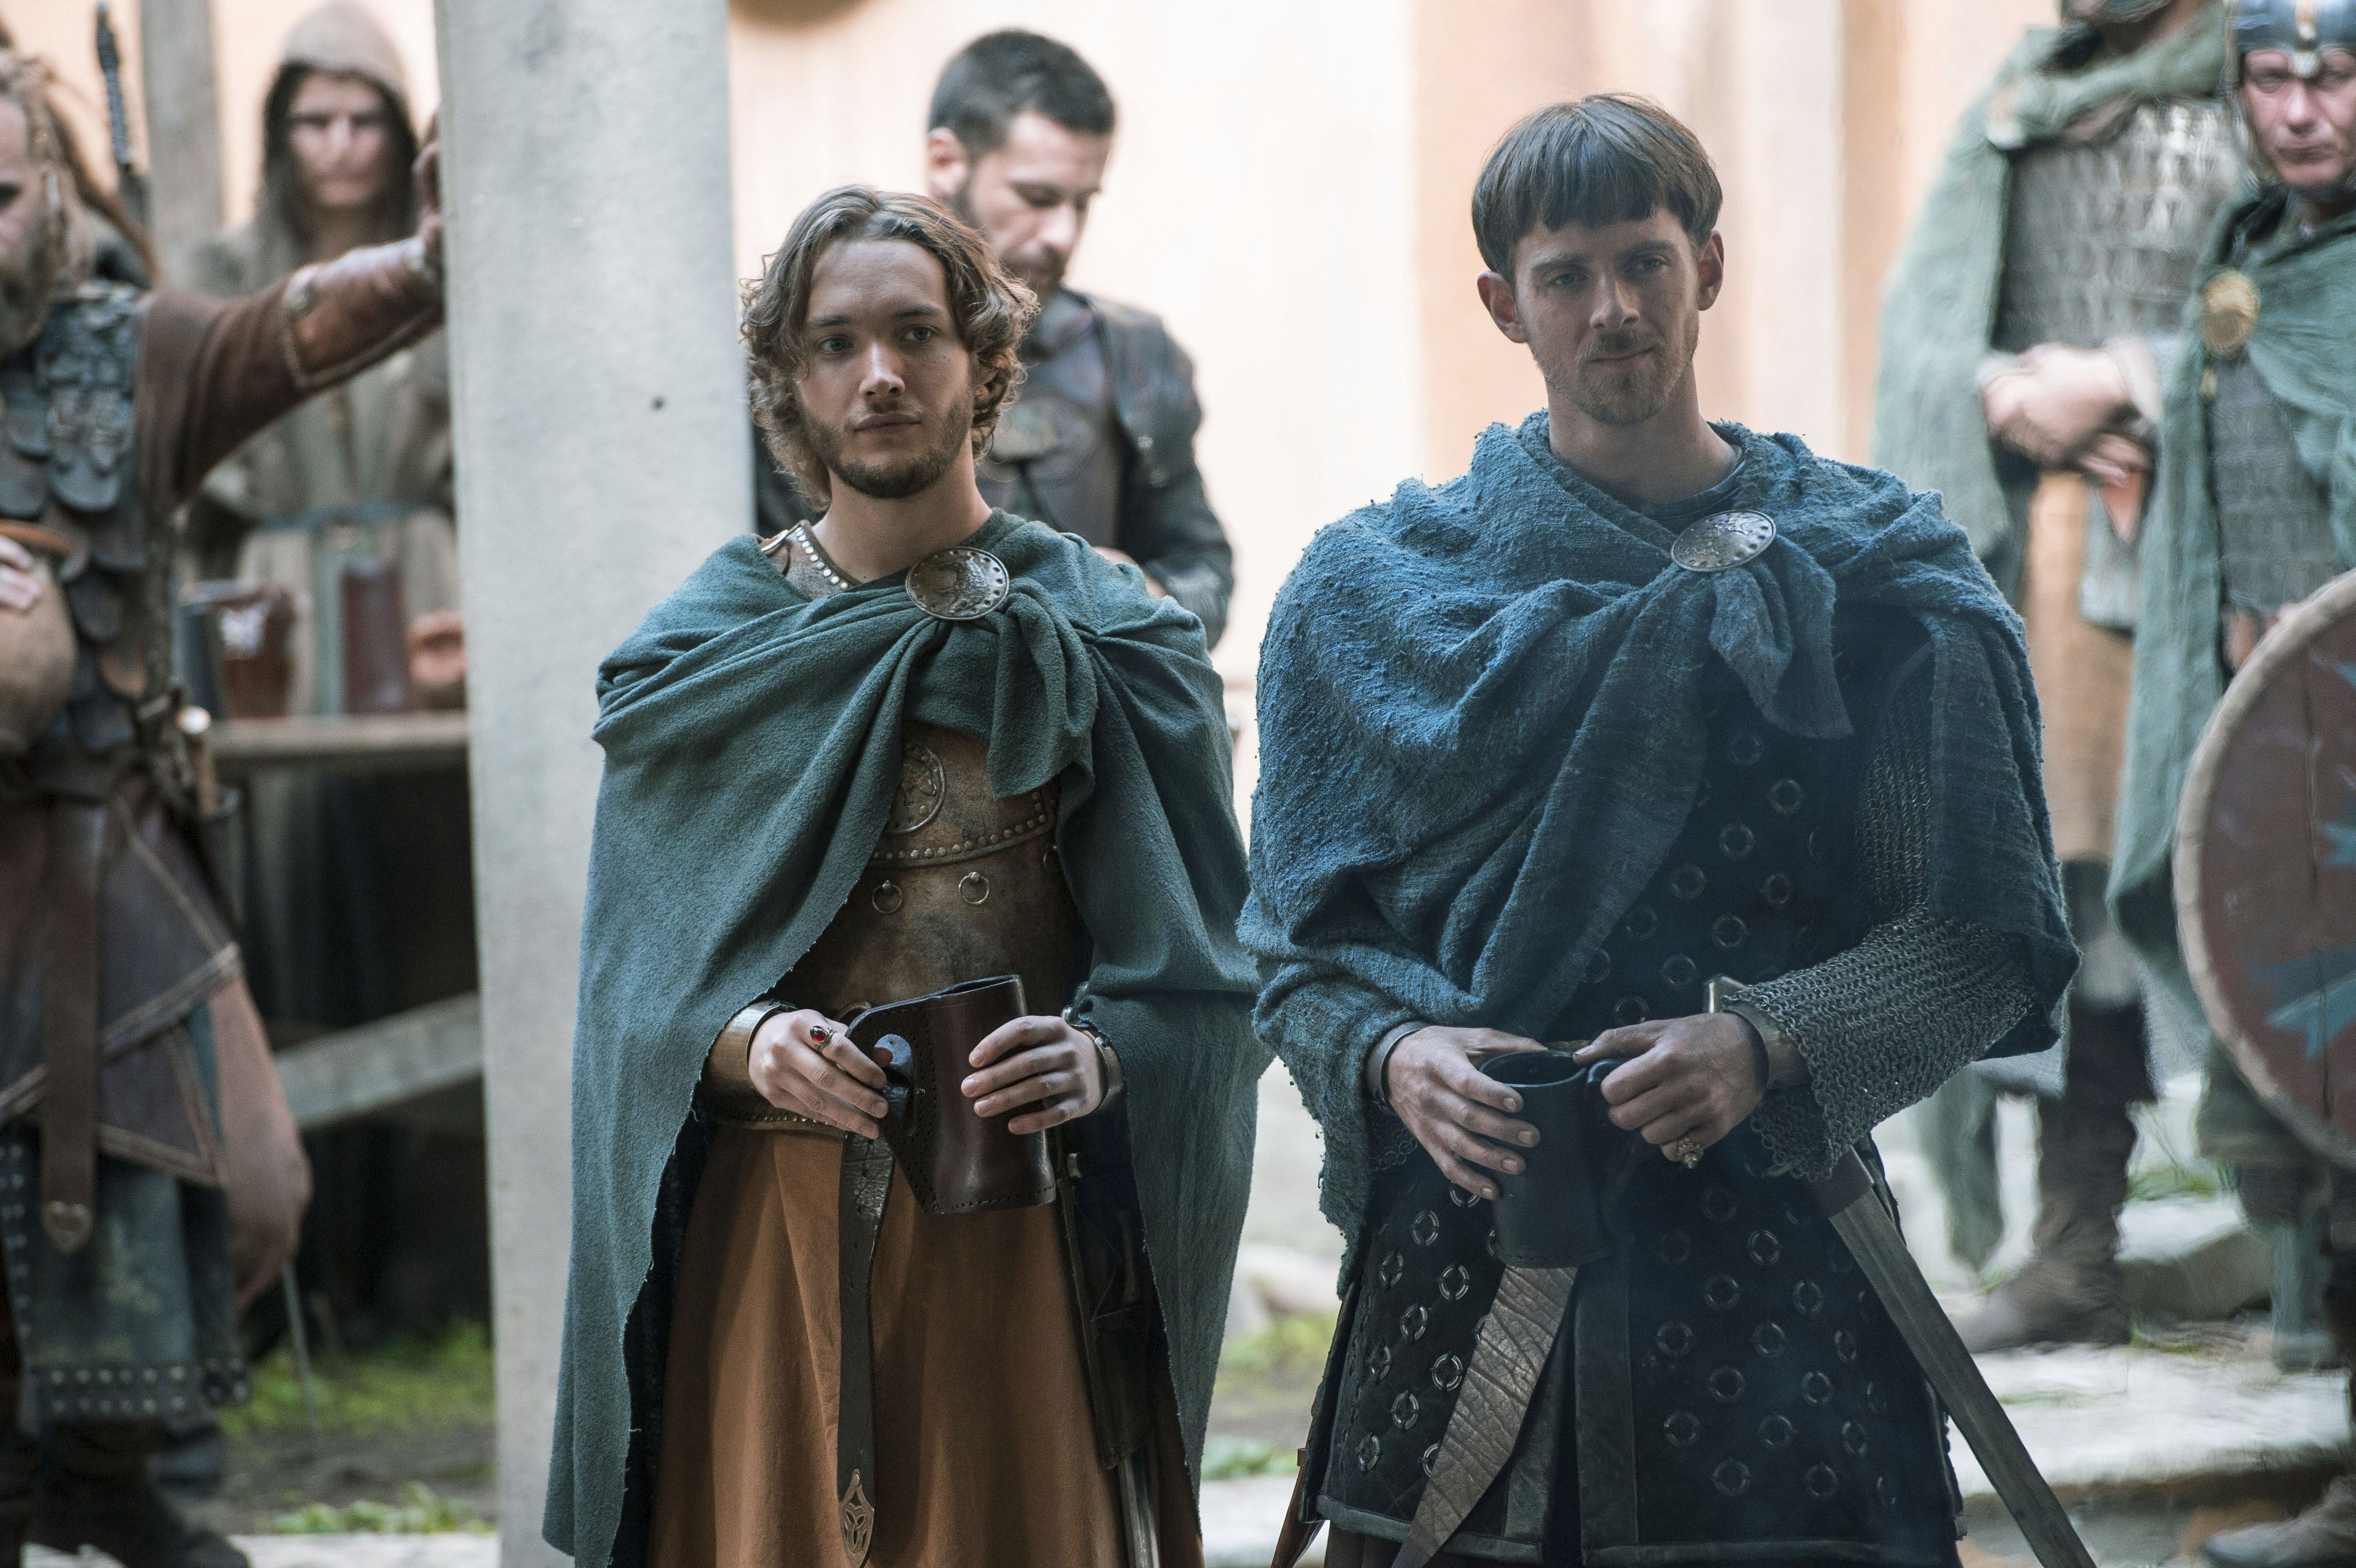 The Last Kingdom Aethelred And Aldhelm With Images The Last